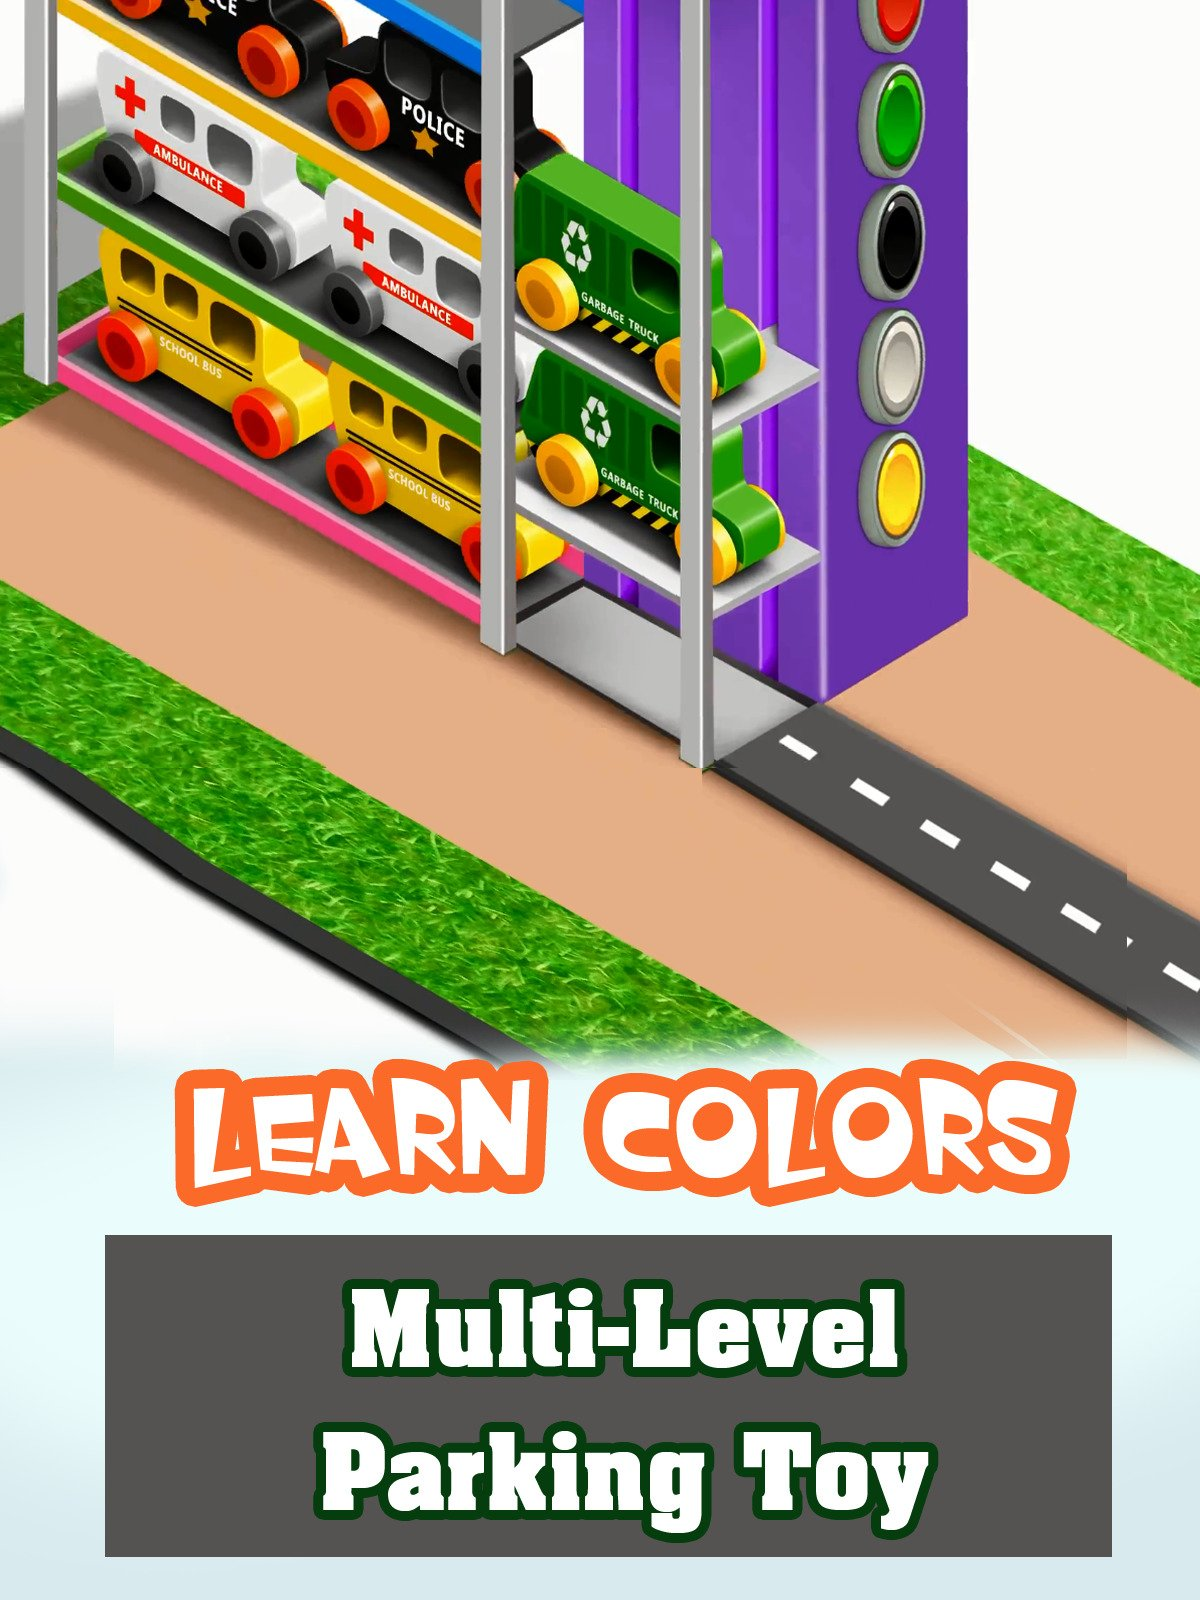 Learn Colors Multi-Level Parking Toy